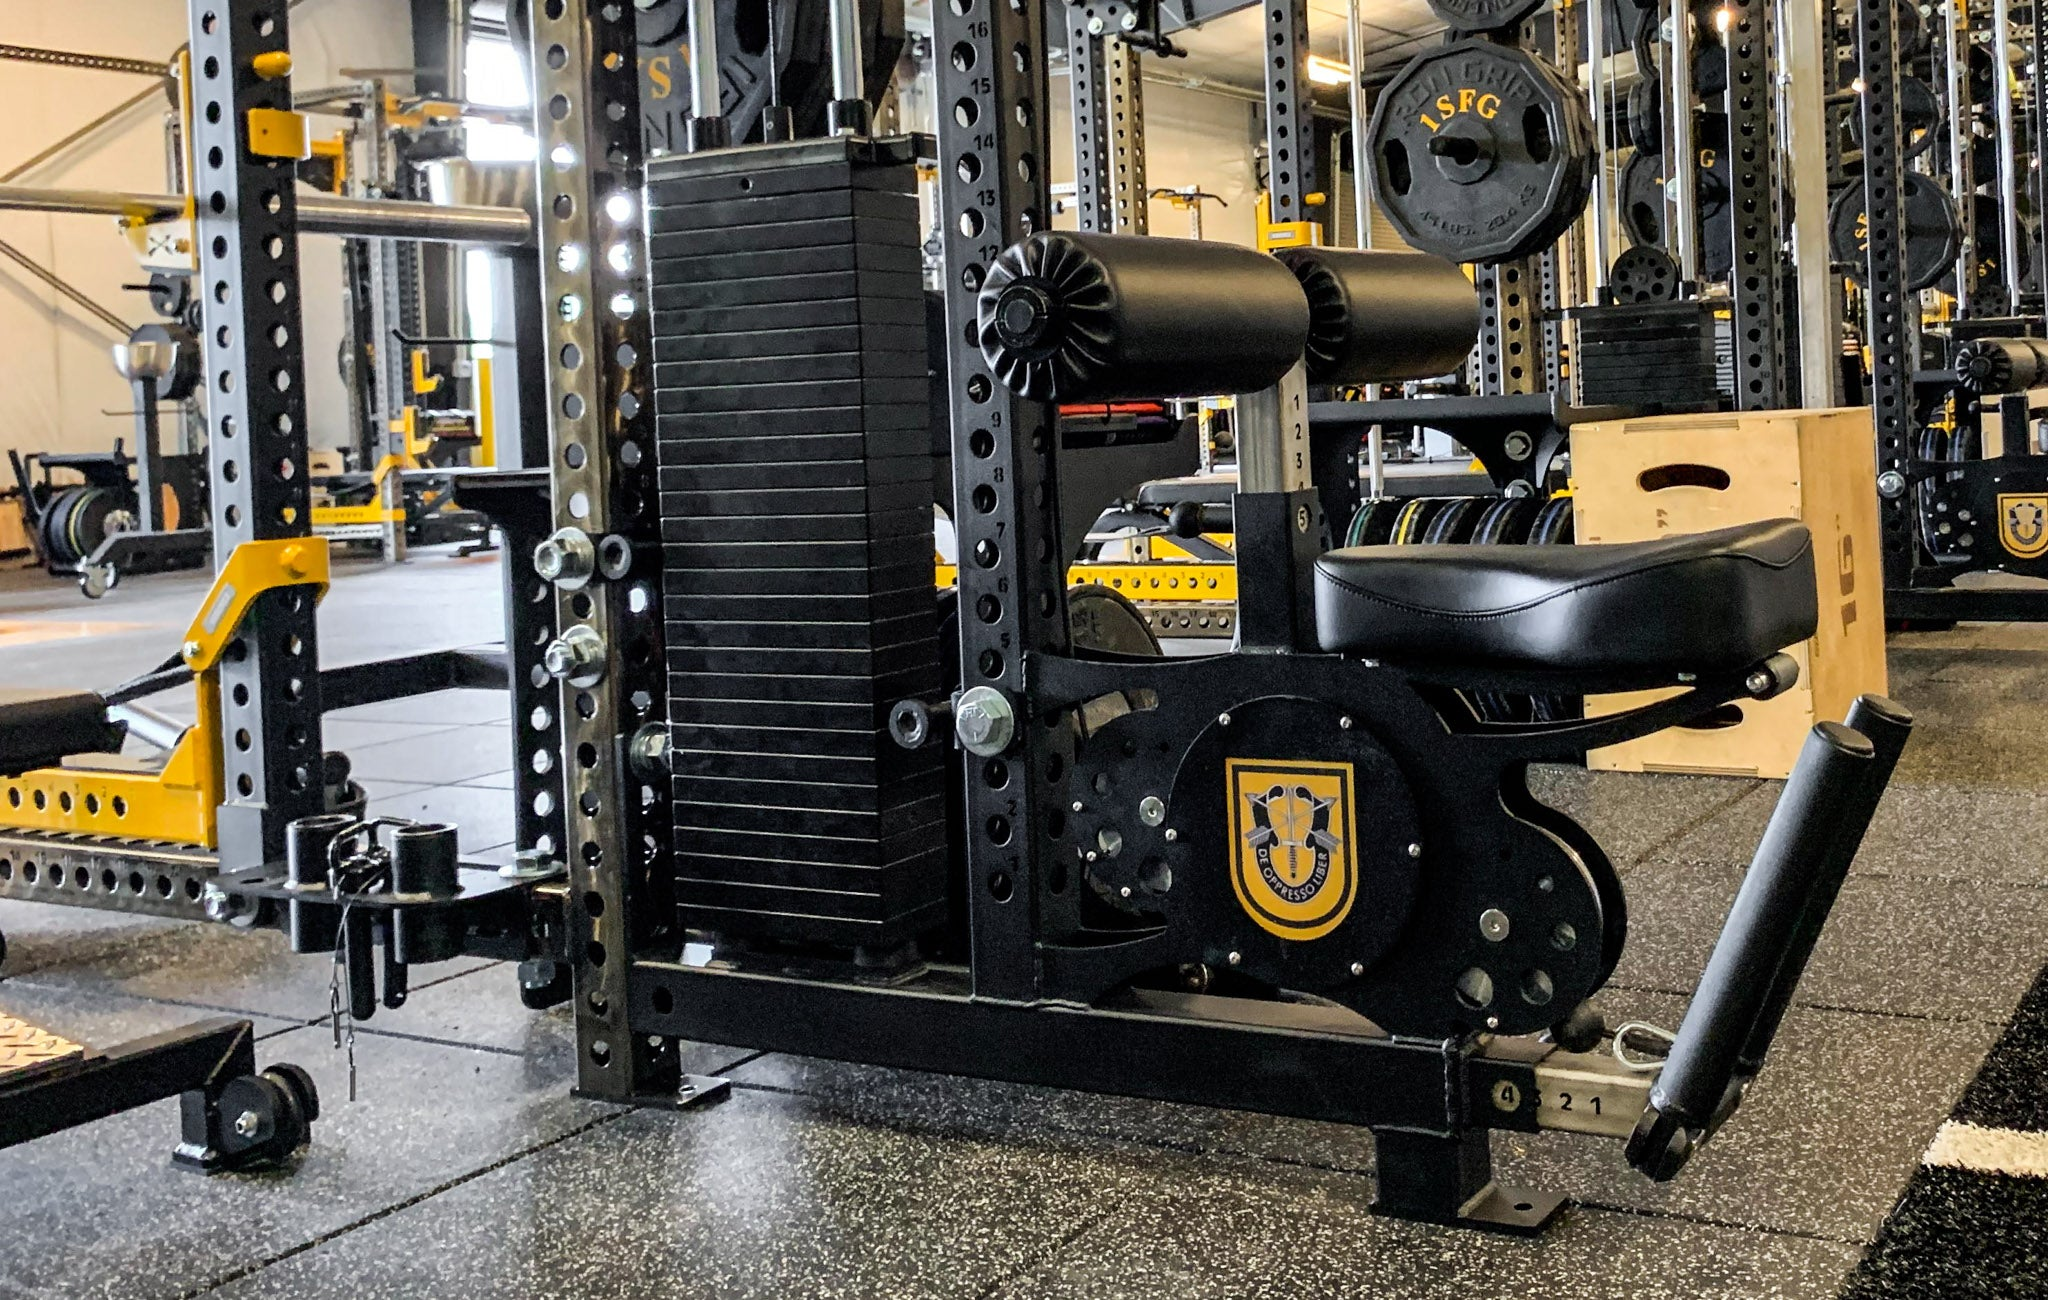 De Oppresso Liber Weight Rooms